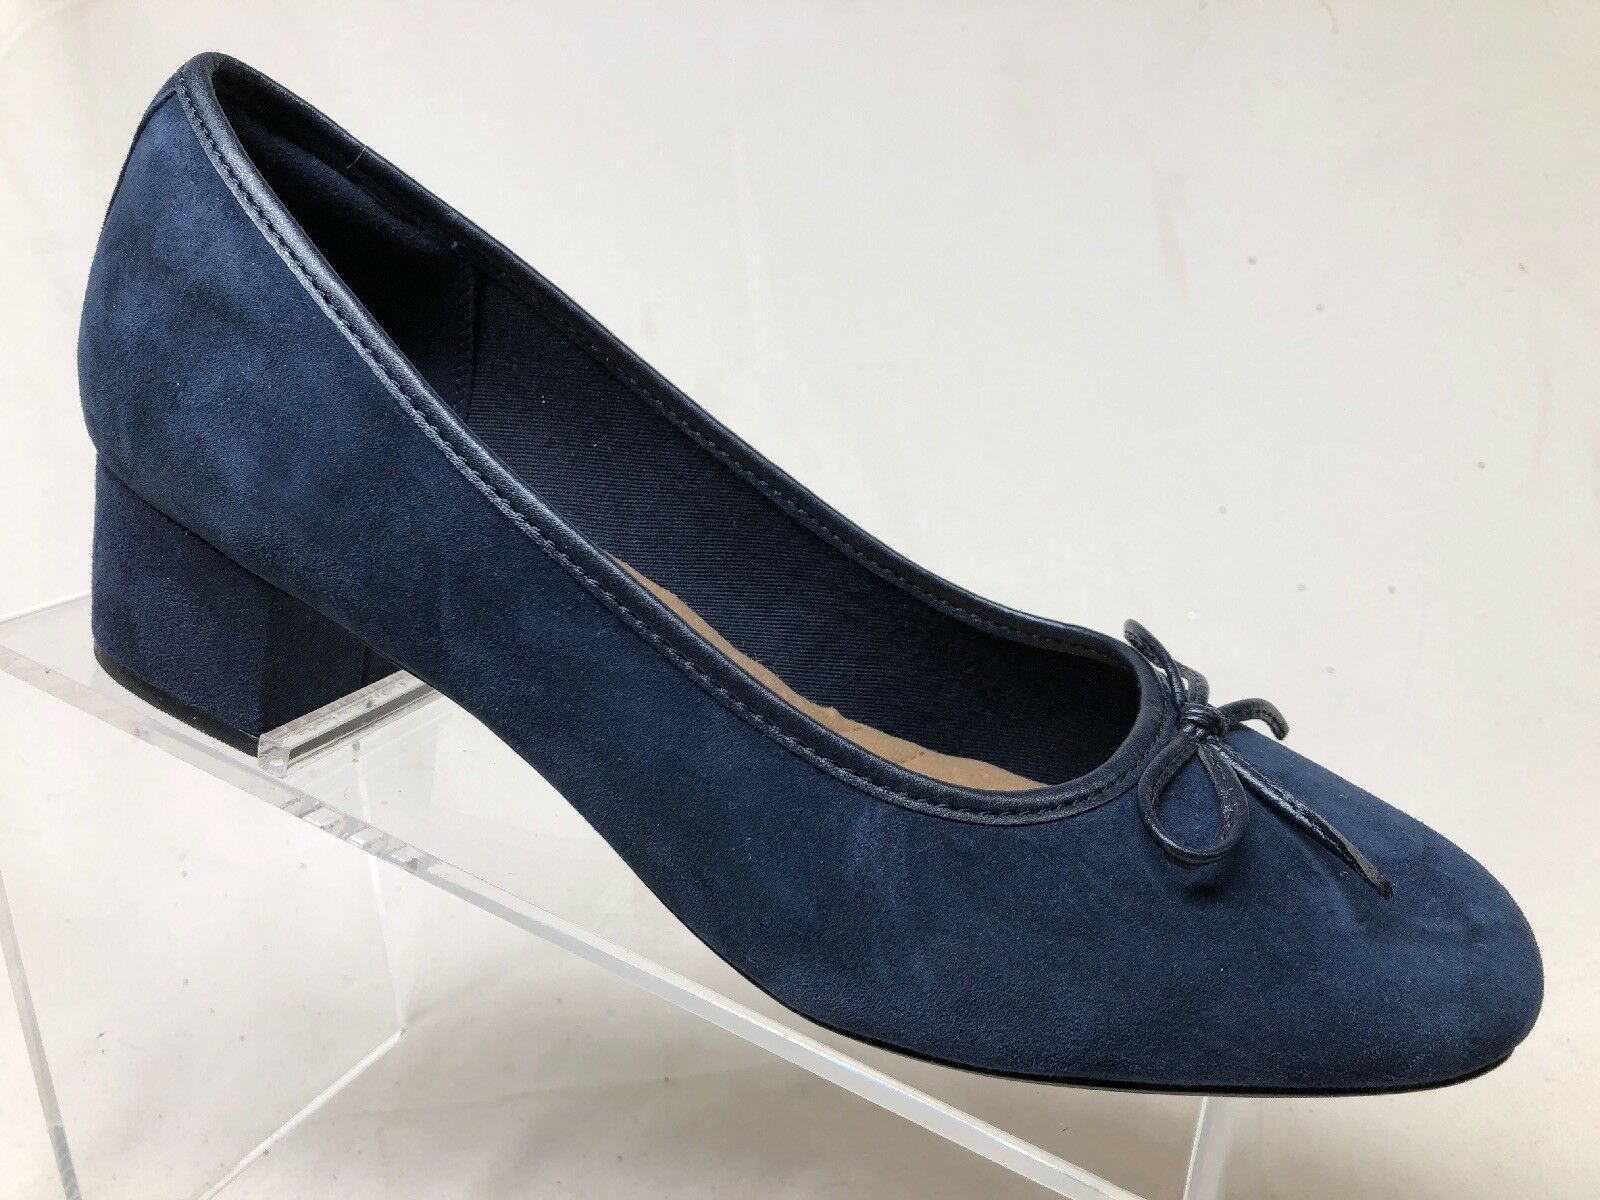 Clarks Women's Navy bluee Suede Leather Heels. Us9.5M uk7D.  NWOB.      Sr1